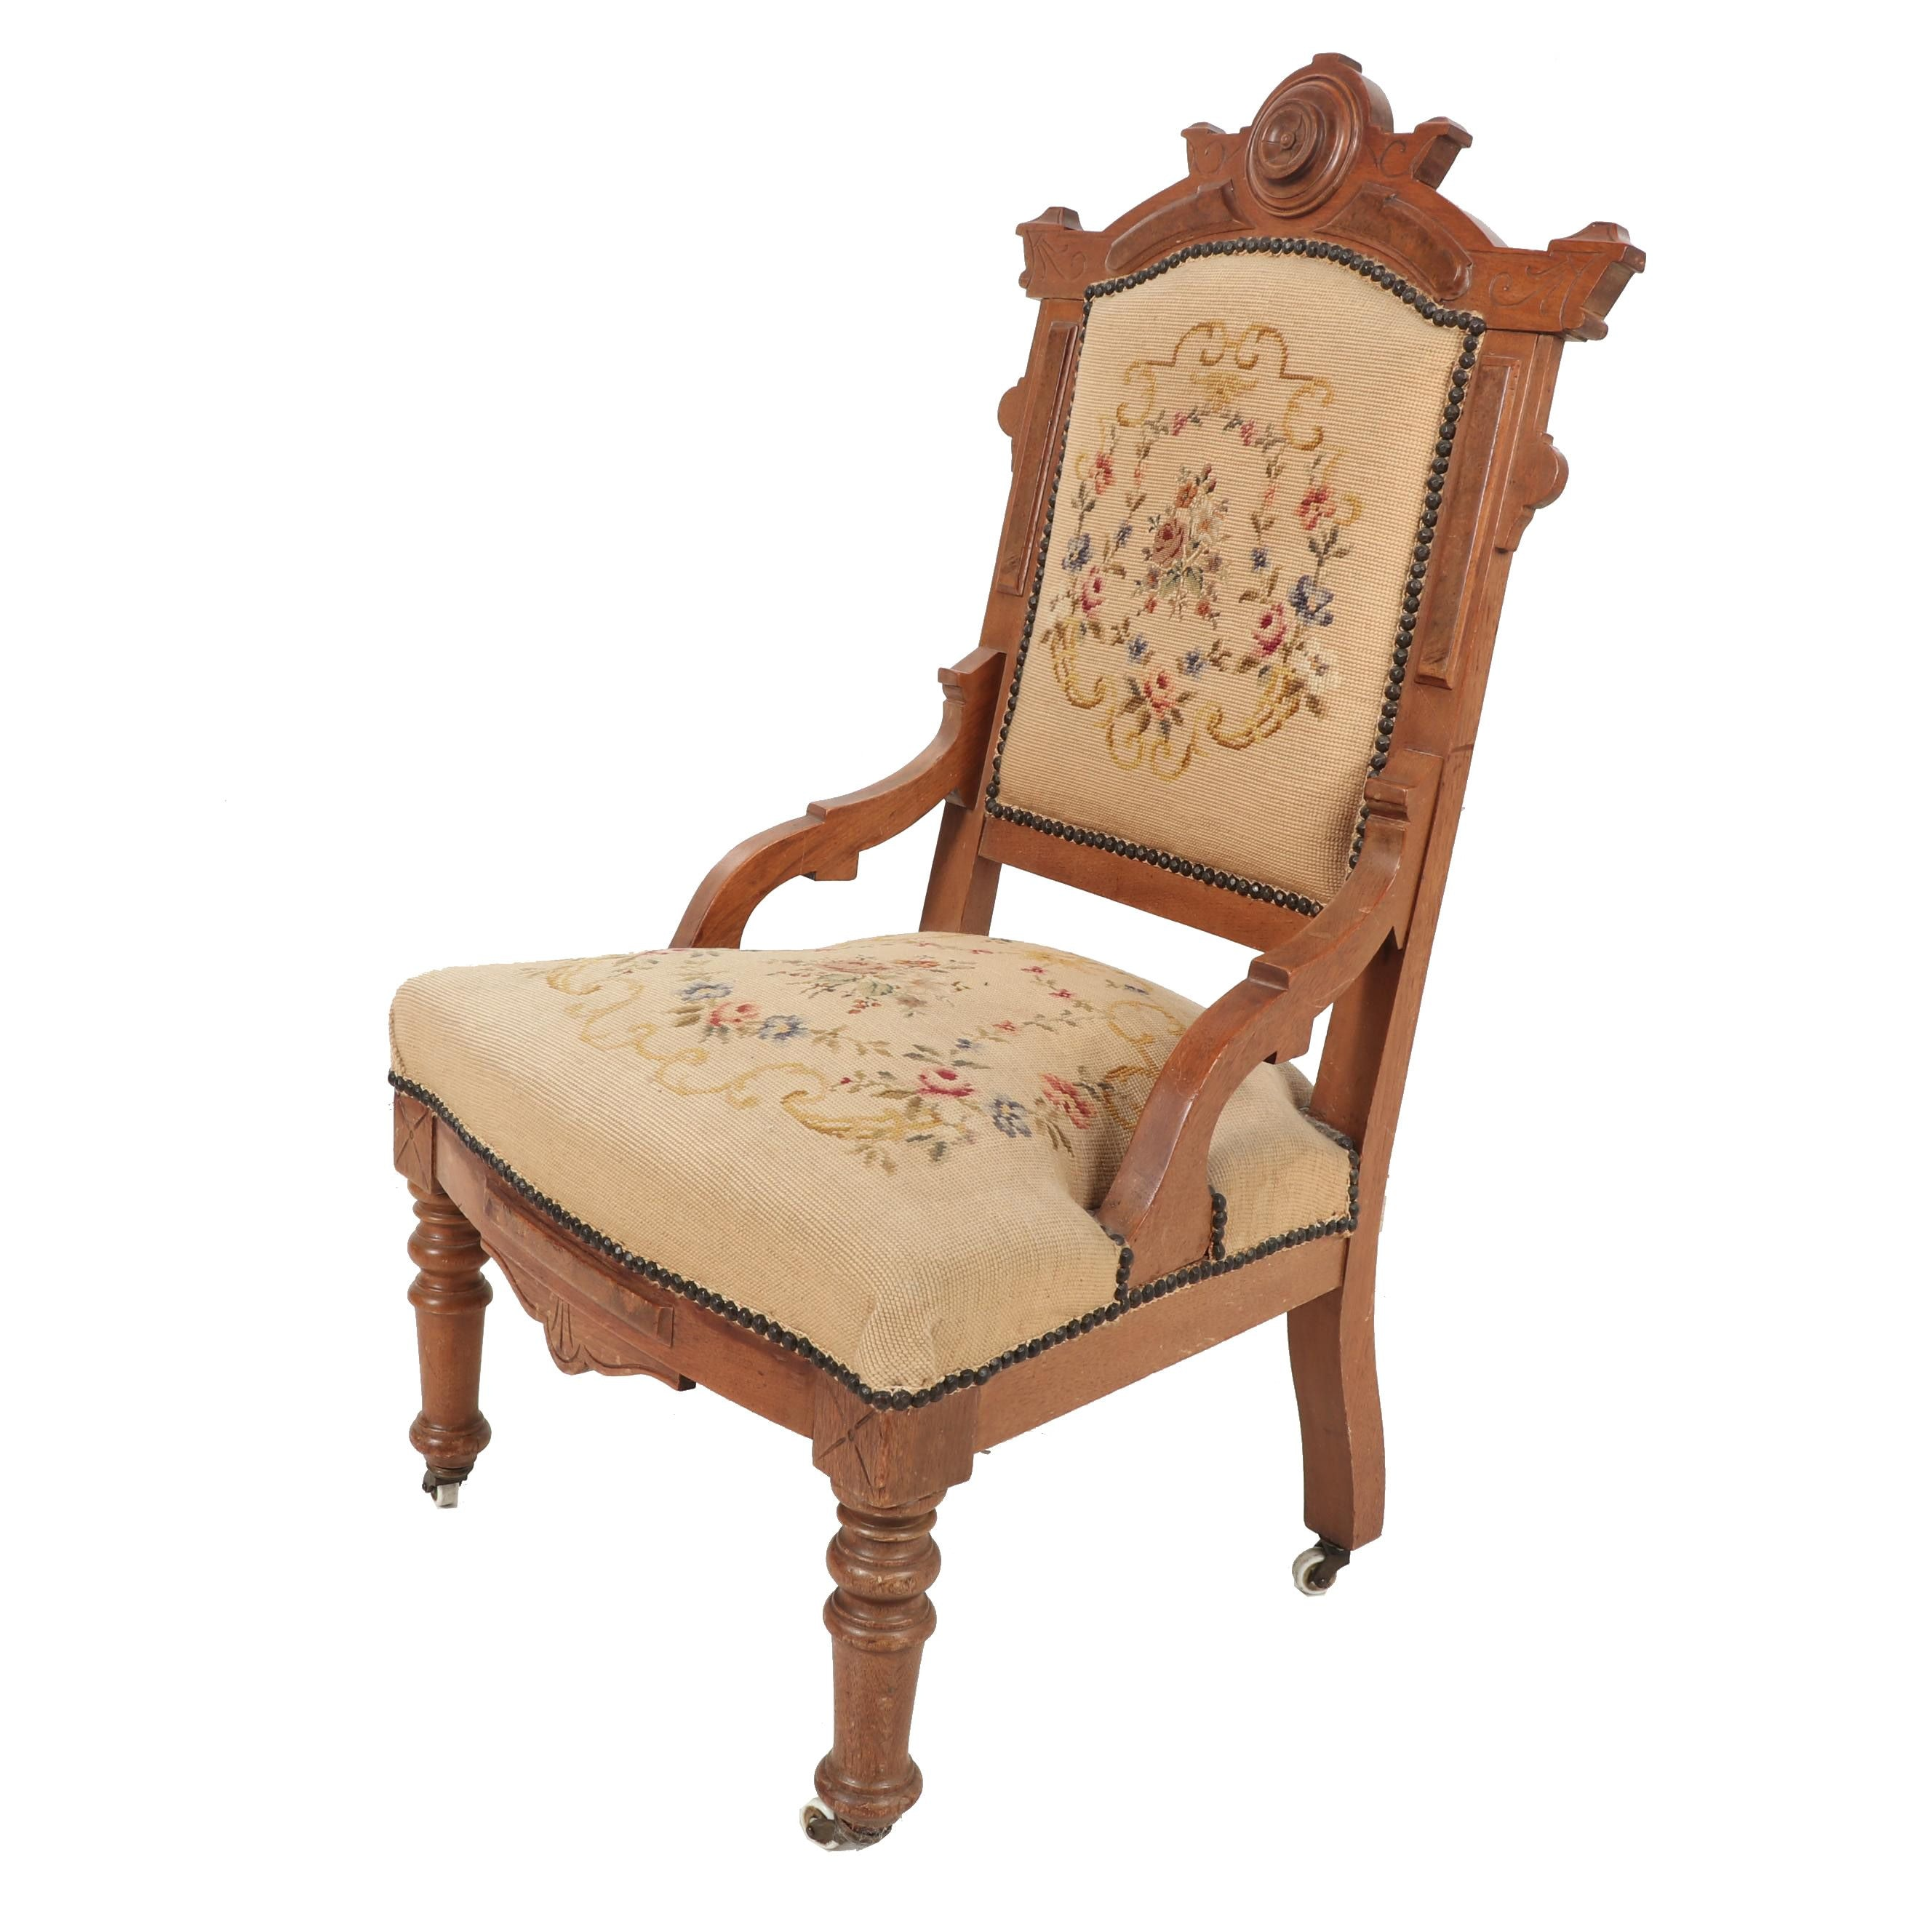 Victorian Eastlake Carved Walnut Side Chair with Needlepoint Upholstery, 19th c.